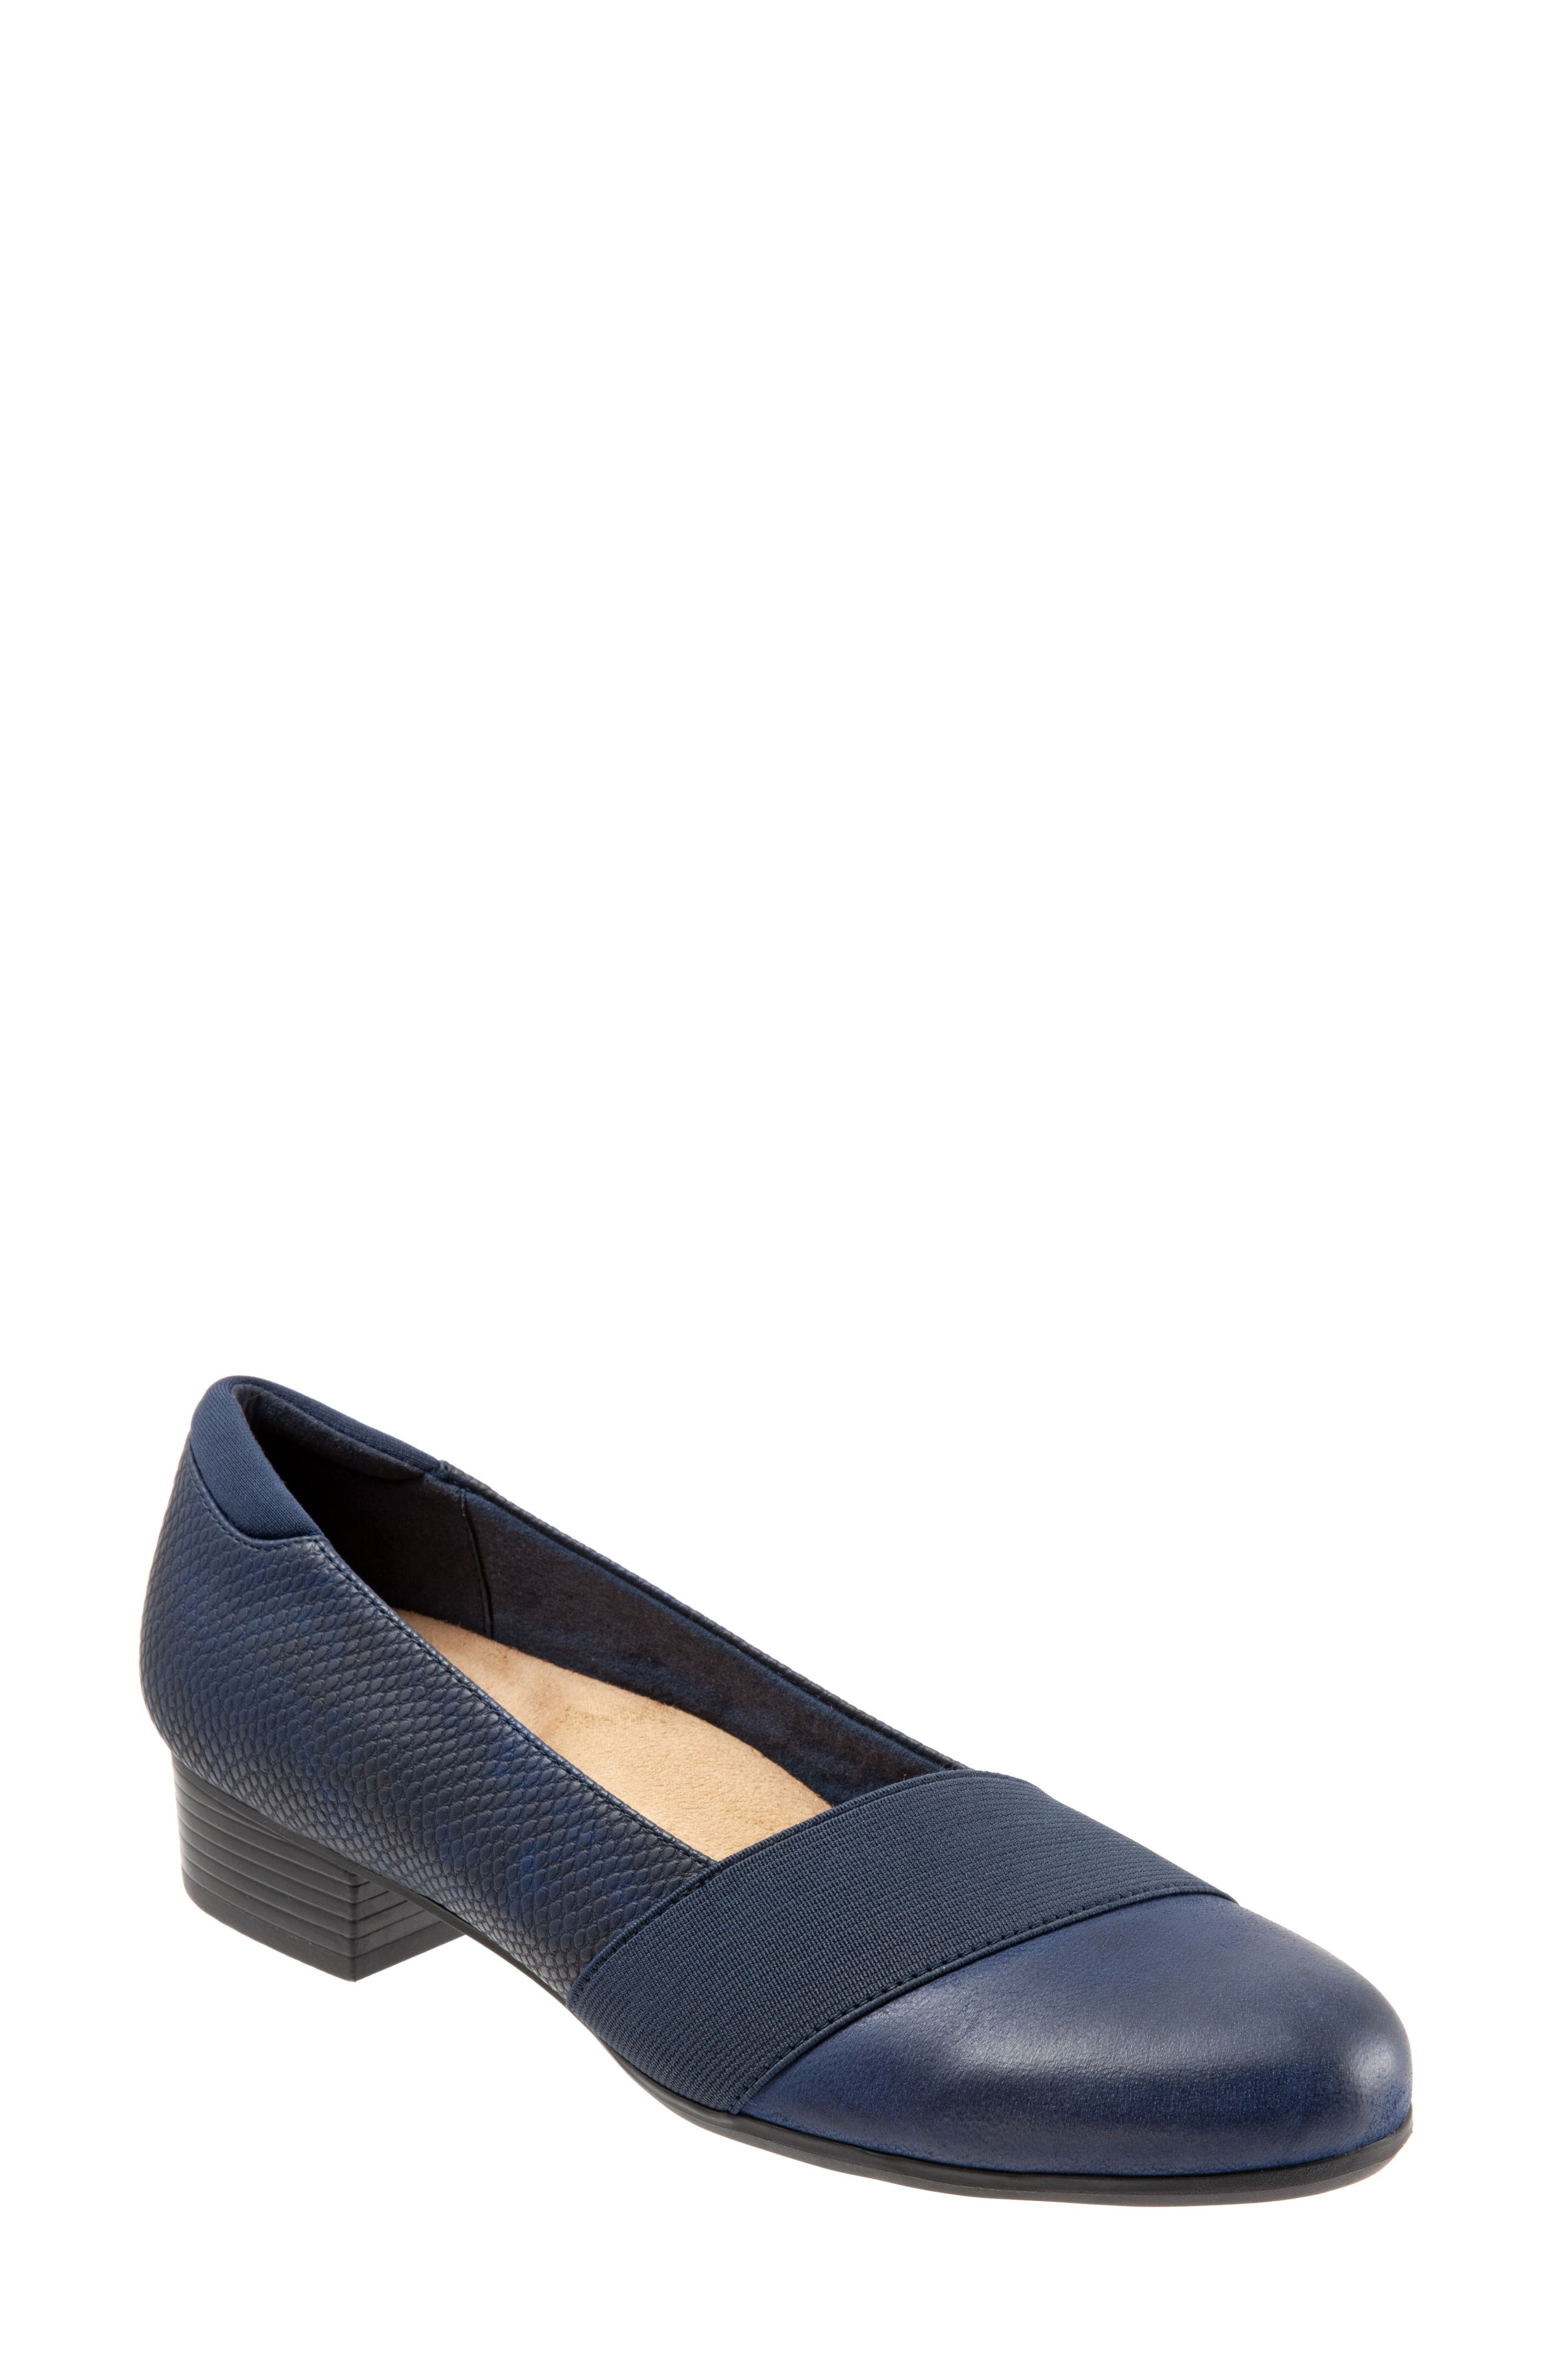 TROTTERS Melinda Loafer, Main, color, NAVY LEATHER